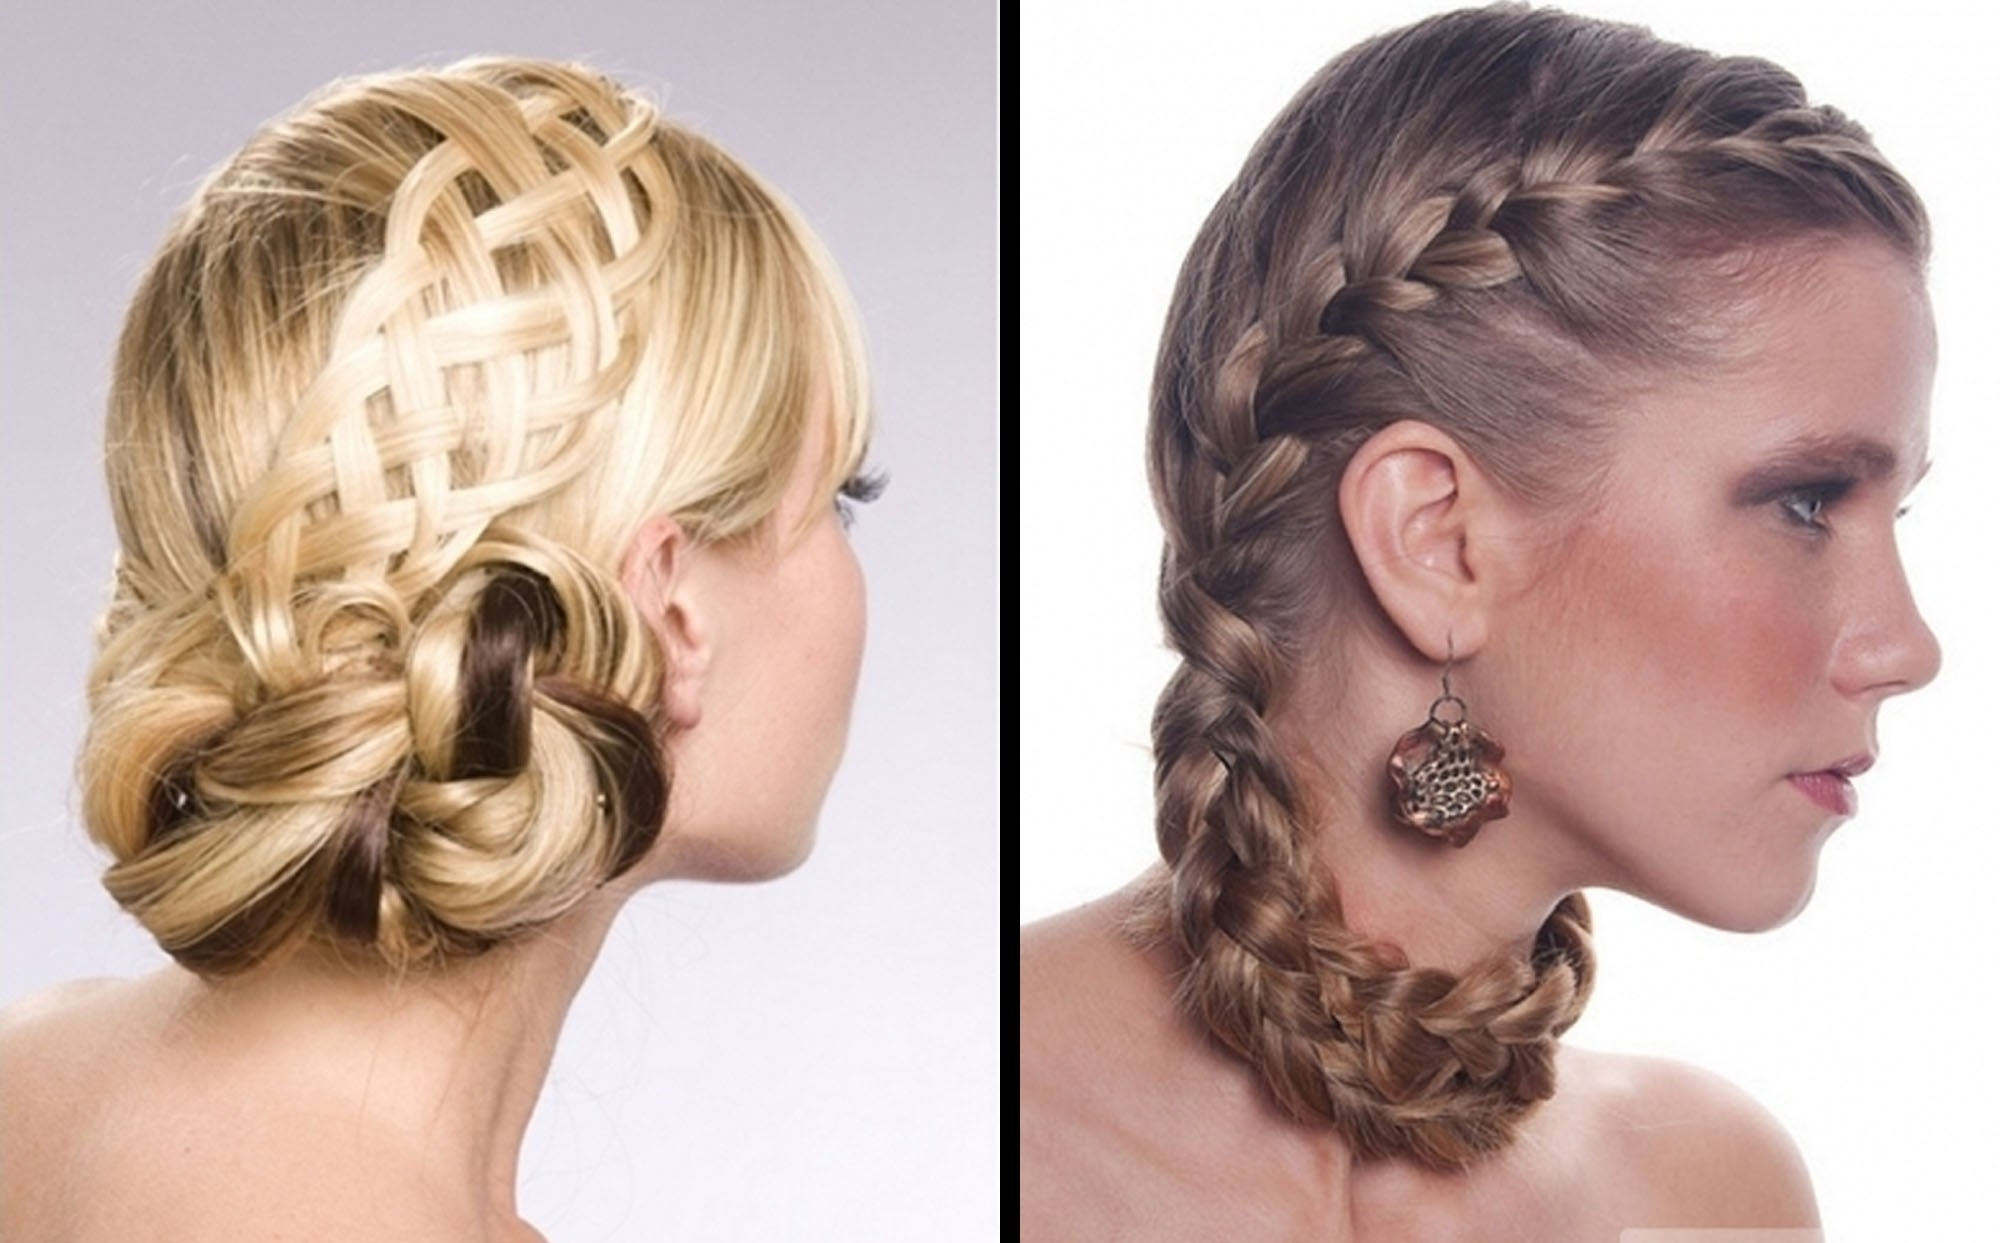 Hairstyles Prom For Short Hair Easy | Medium Hair Styles Ideas – 35491 Within Prom Updo Hairstyles (View 9 of 15)